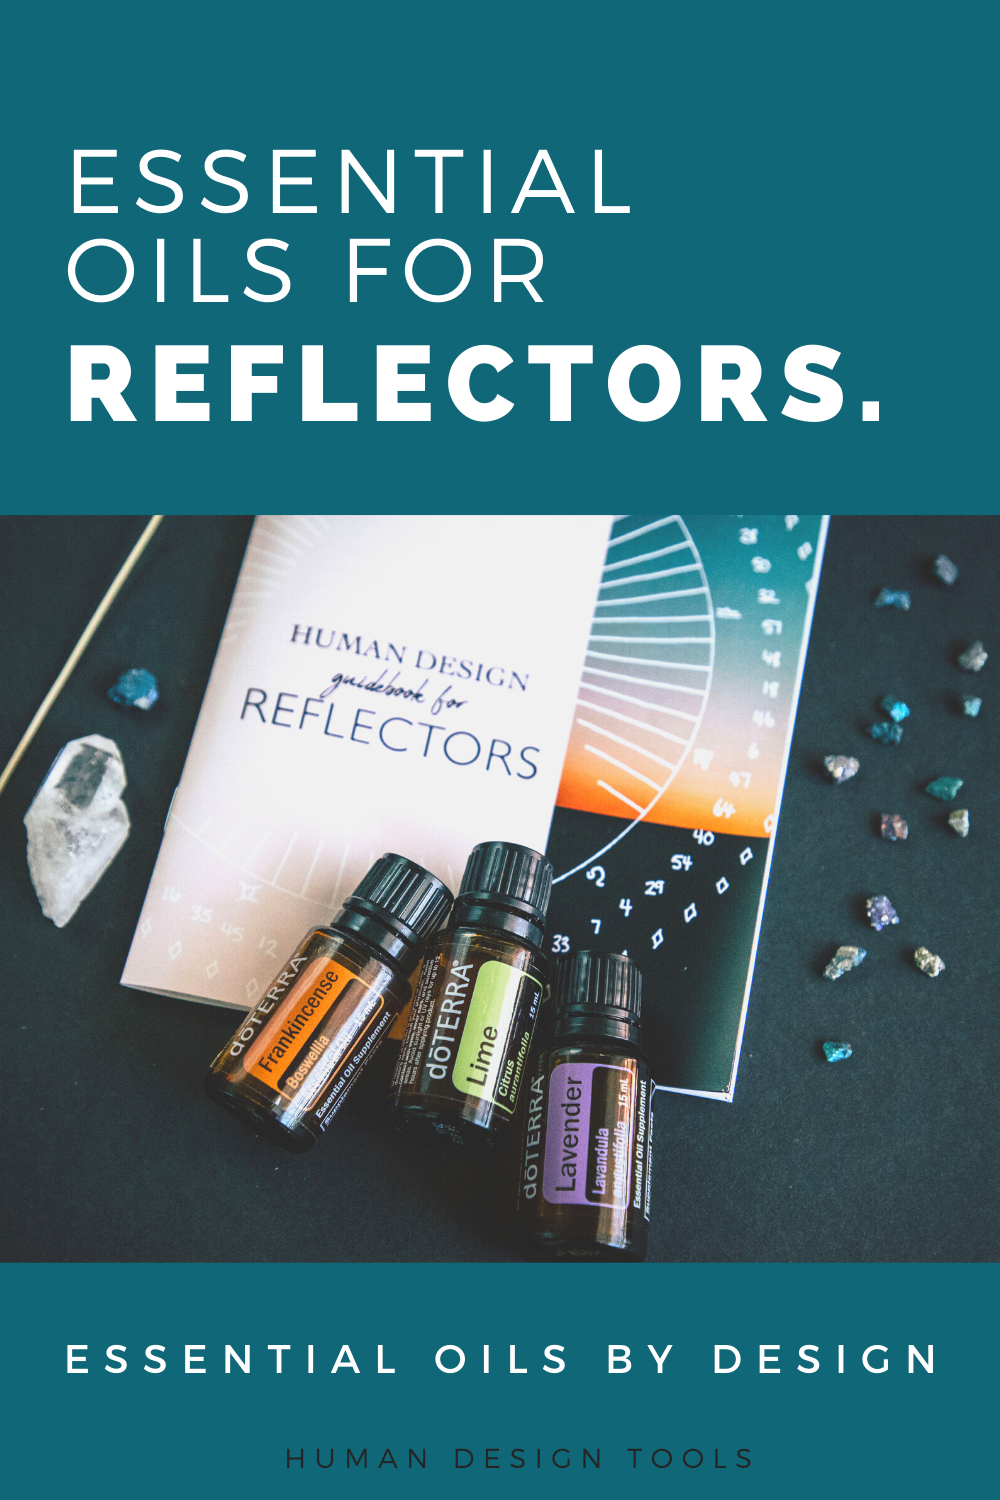 Essential Oils by Design for Reflectors